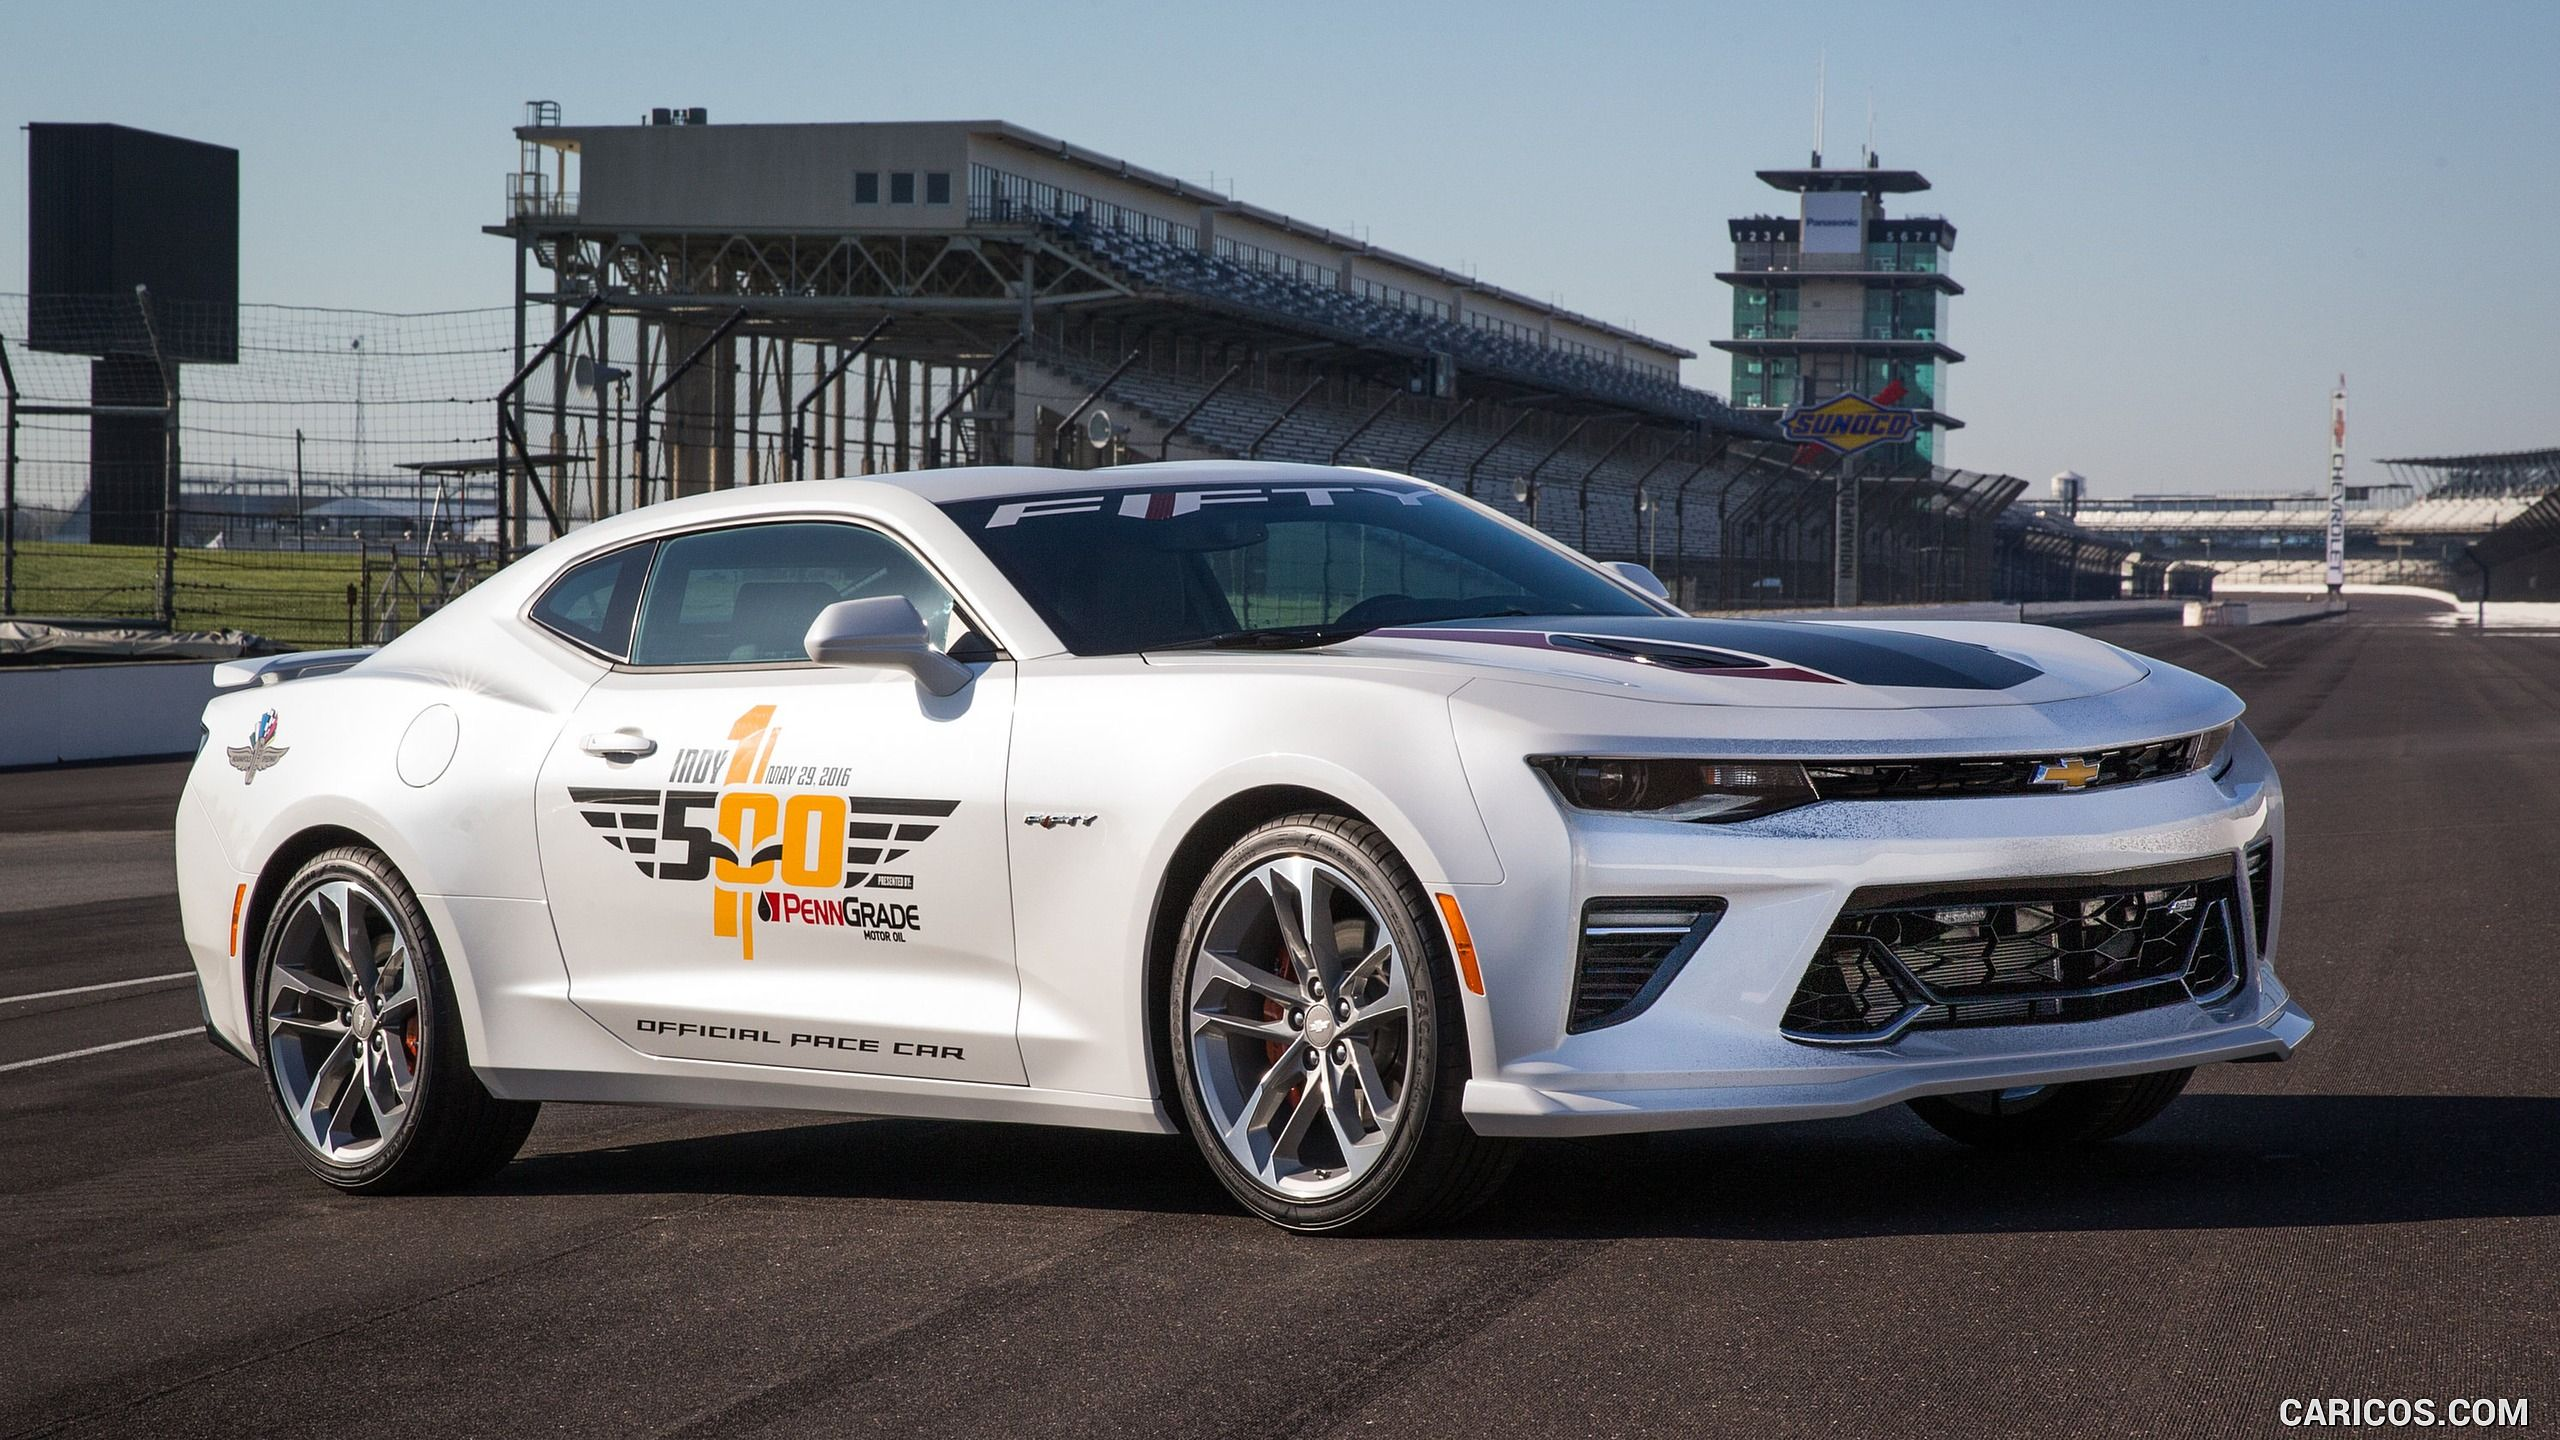 2016 Chevrolet Camaro SS Indy 500 Pace Car (2017 50th Anniversary Special Edition) Wallpaper